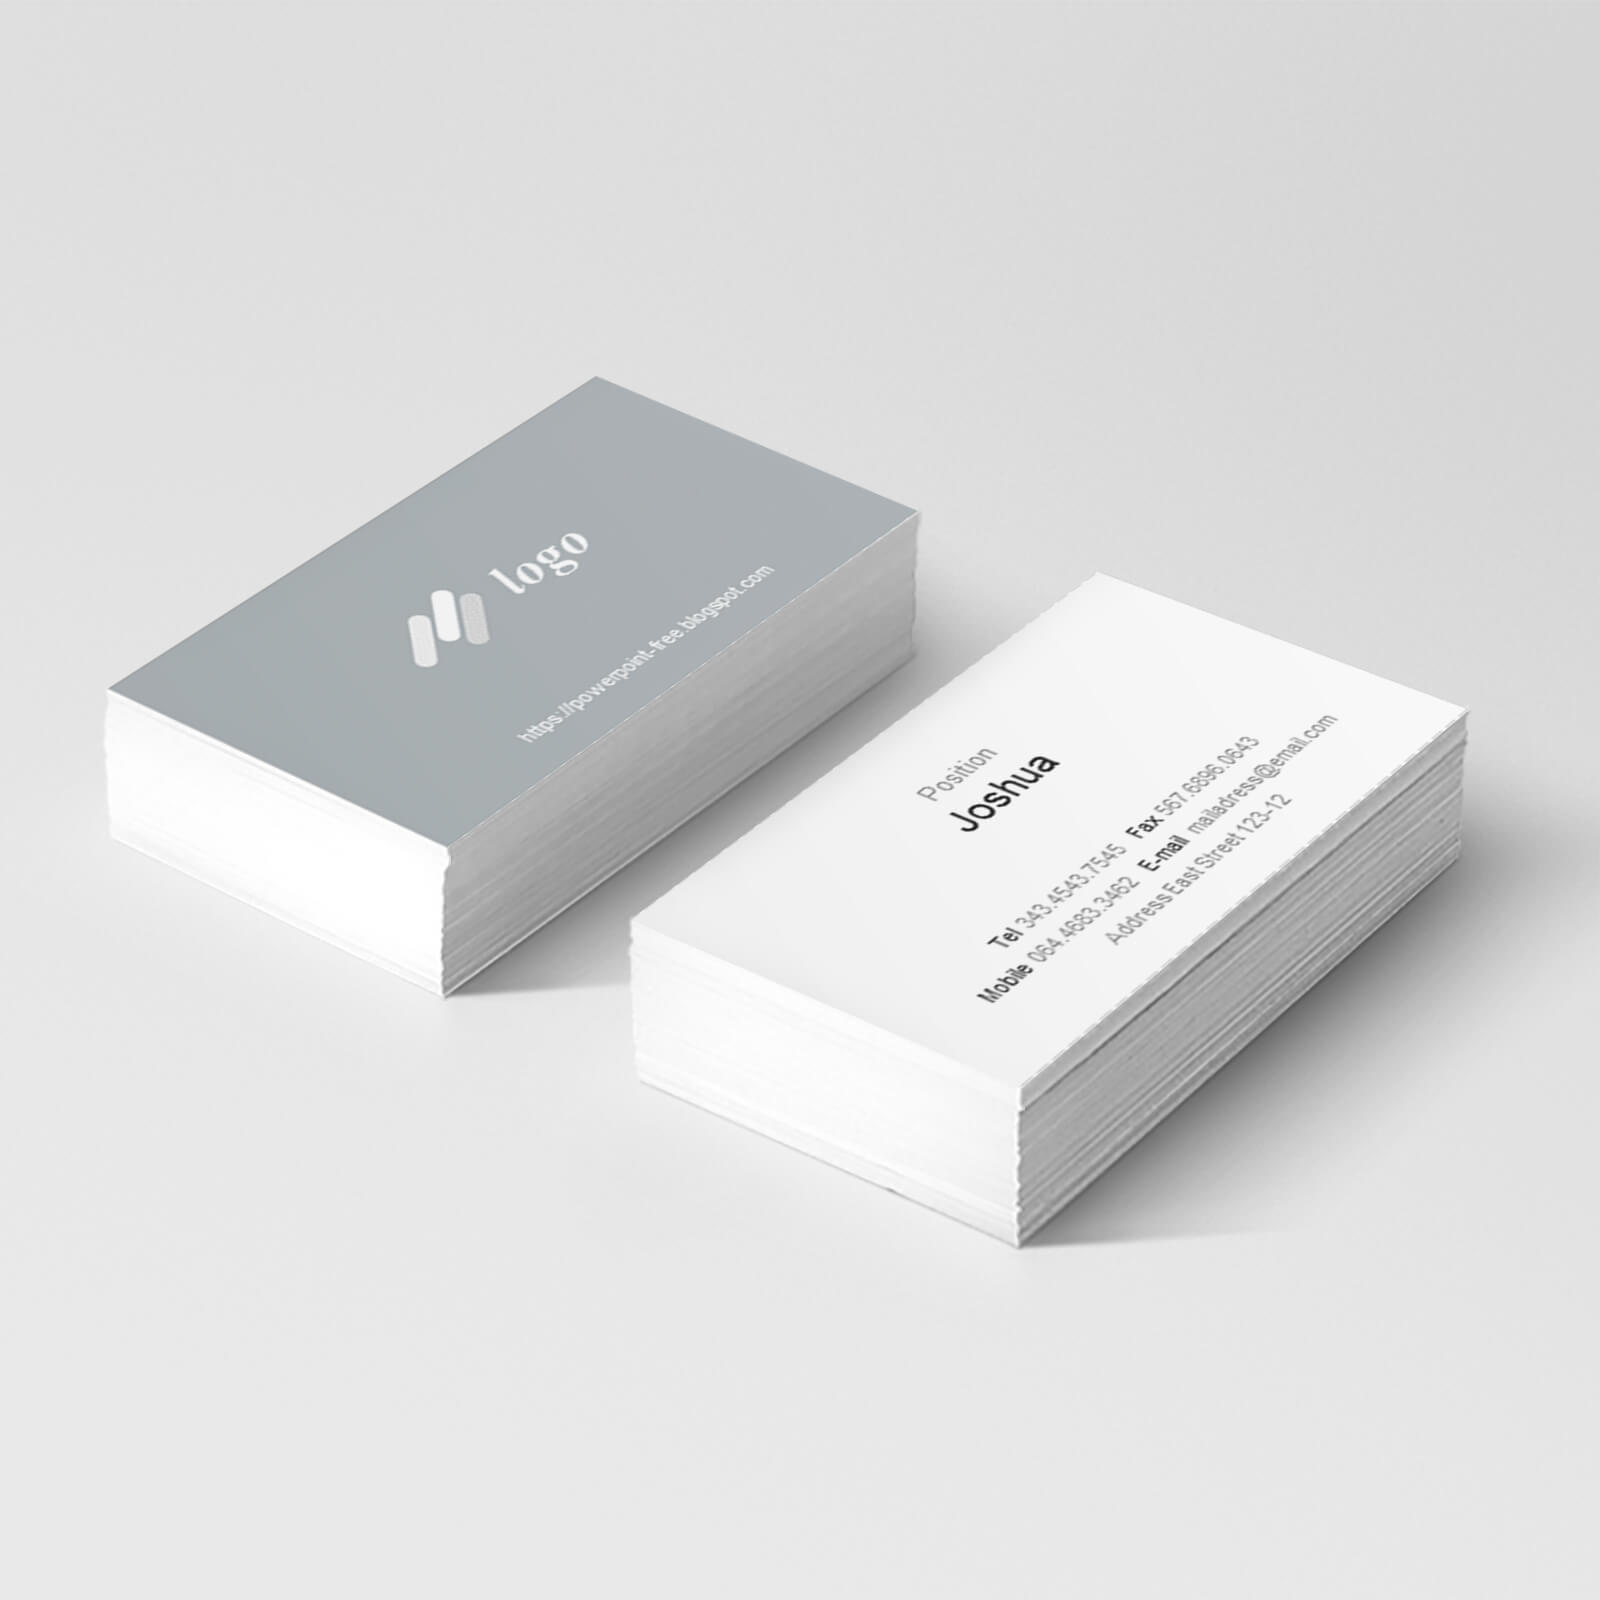 Basic Business Card Powerpoint Templates - Powerpoint Free With Business Card Template Powerpoint Free